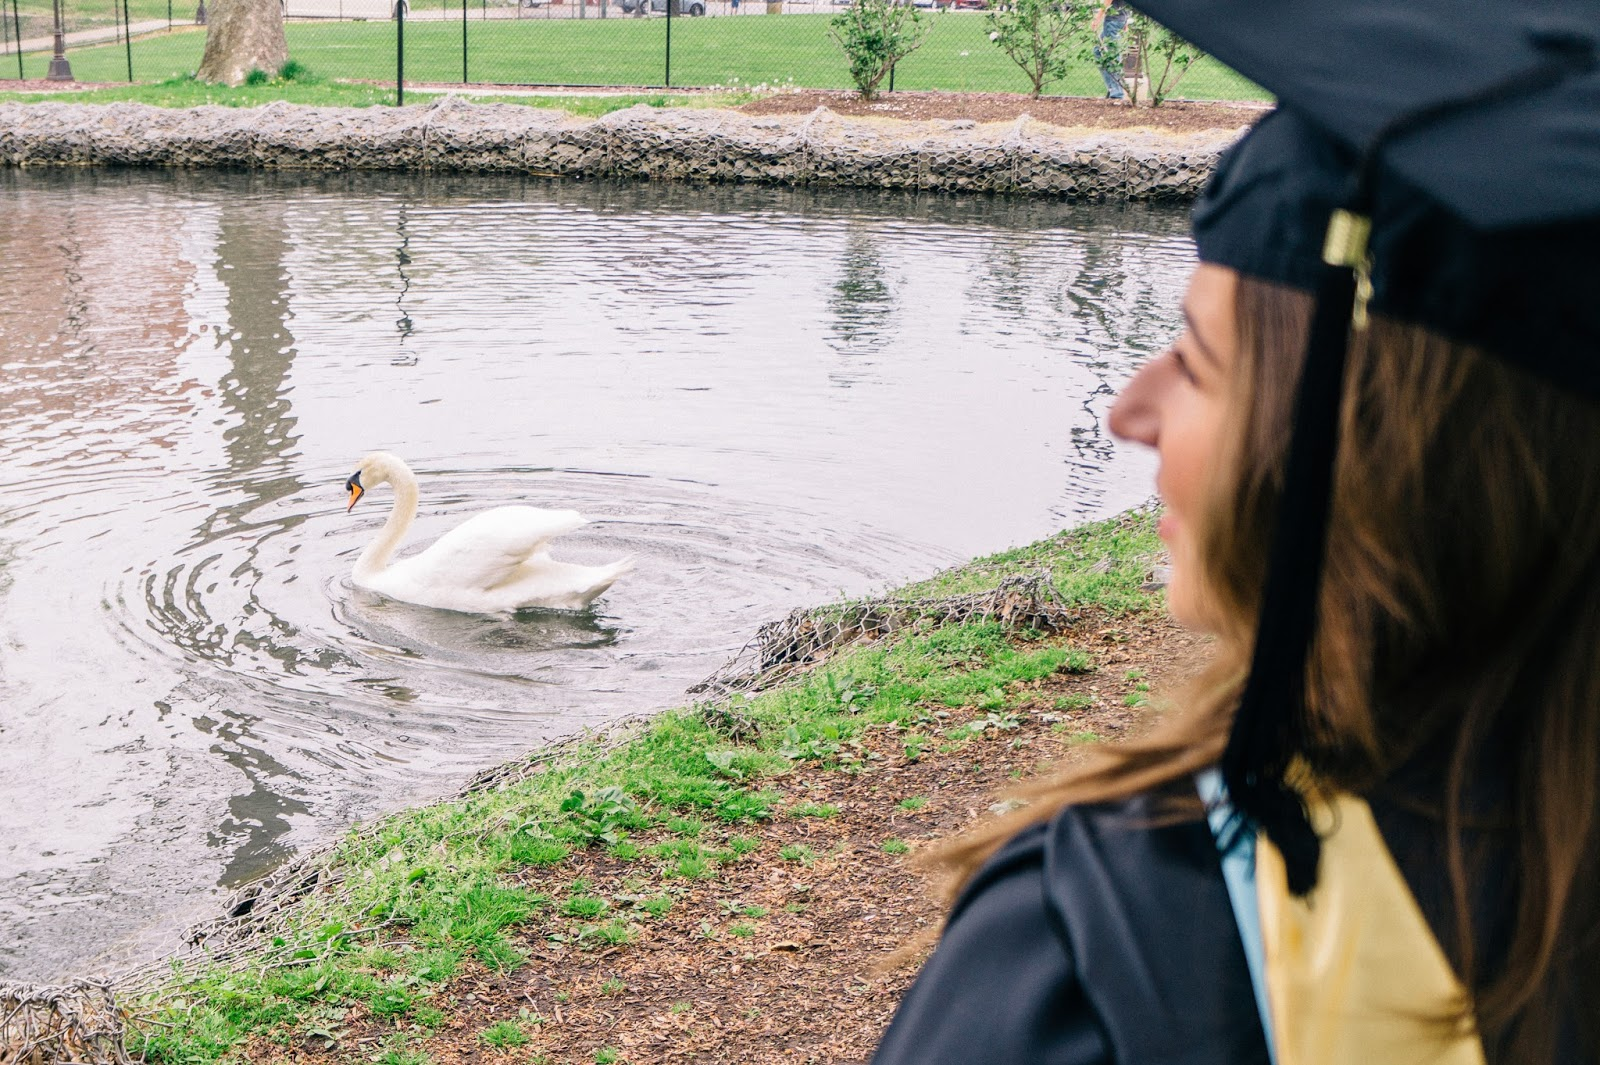 Graduate in front of a pond with a swan swimming by.